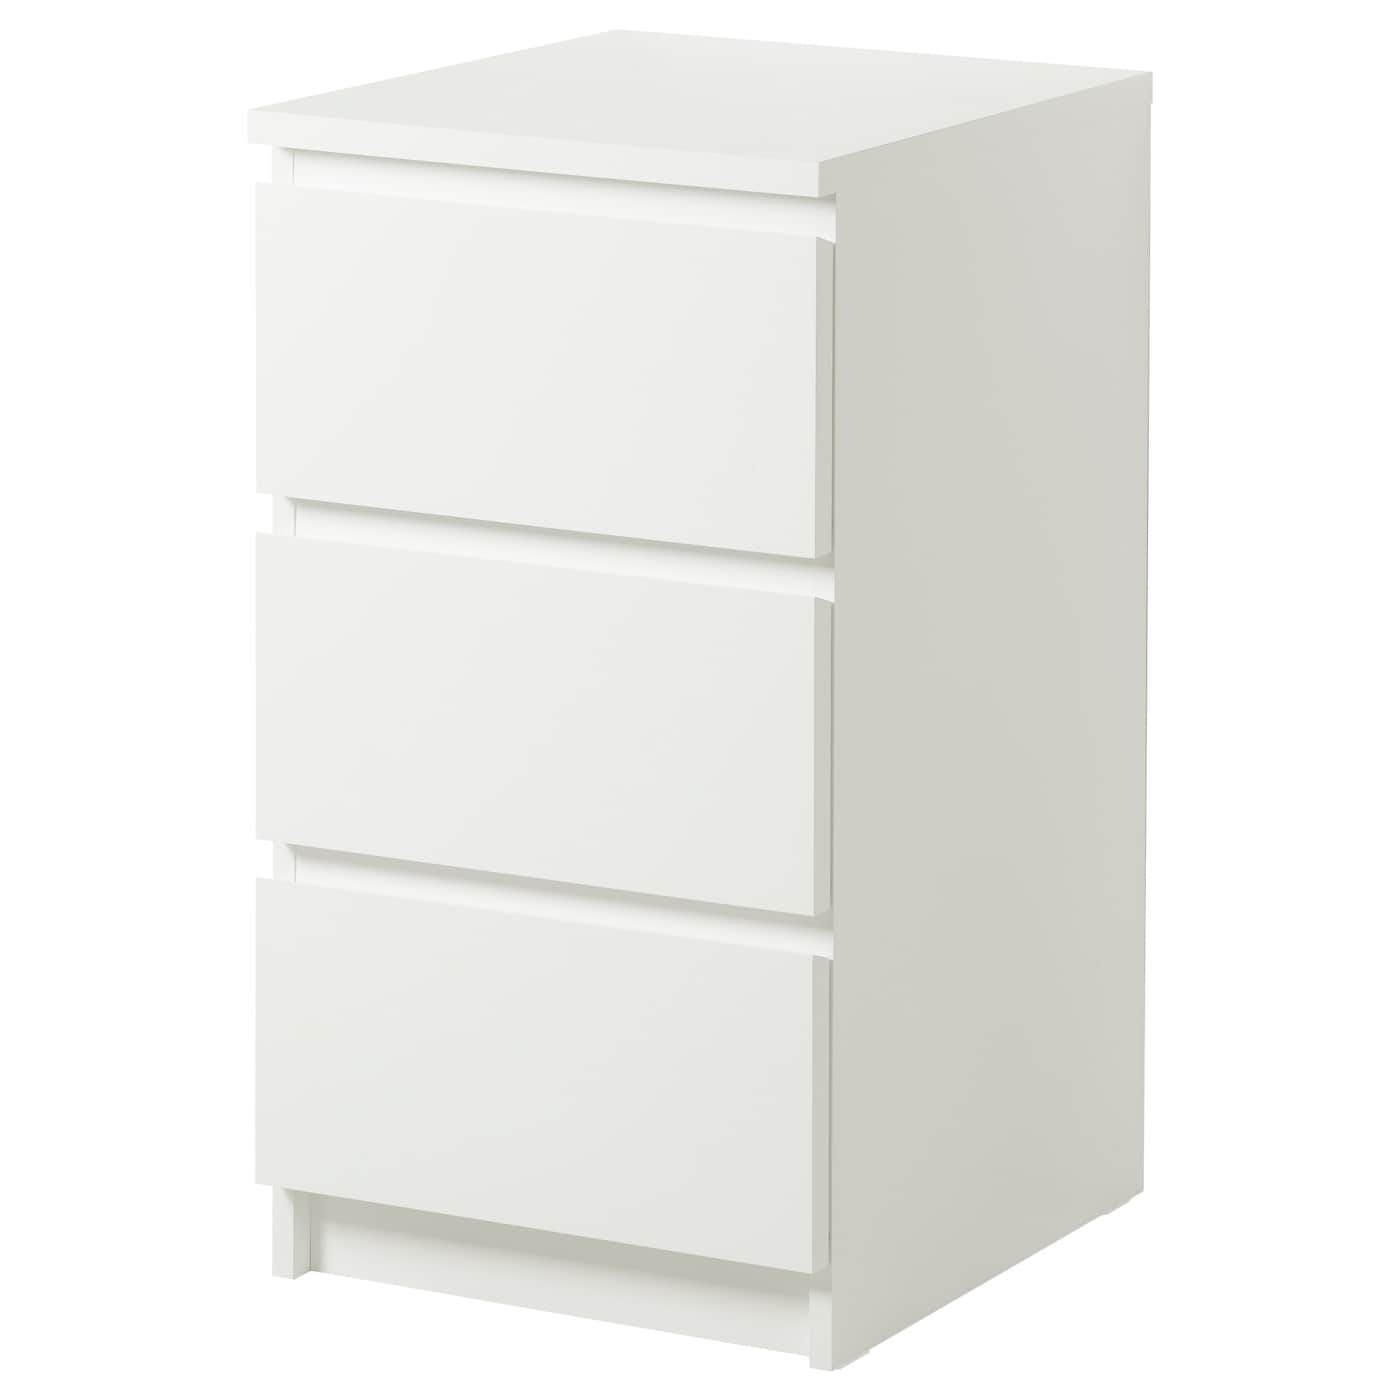 malm chest of 3 drawers white 40 x 78 cm ikea. Black Bedroom Furniture Sets. Home Design Ideas